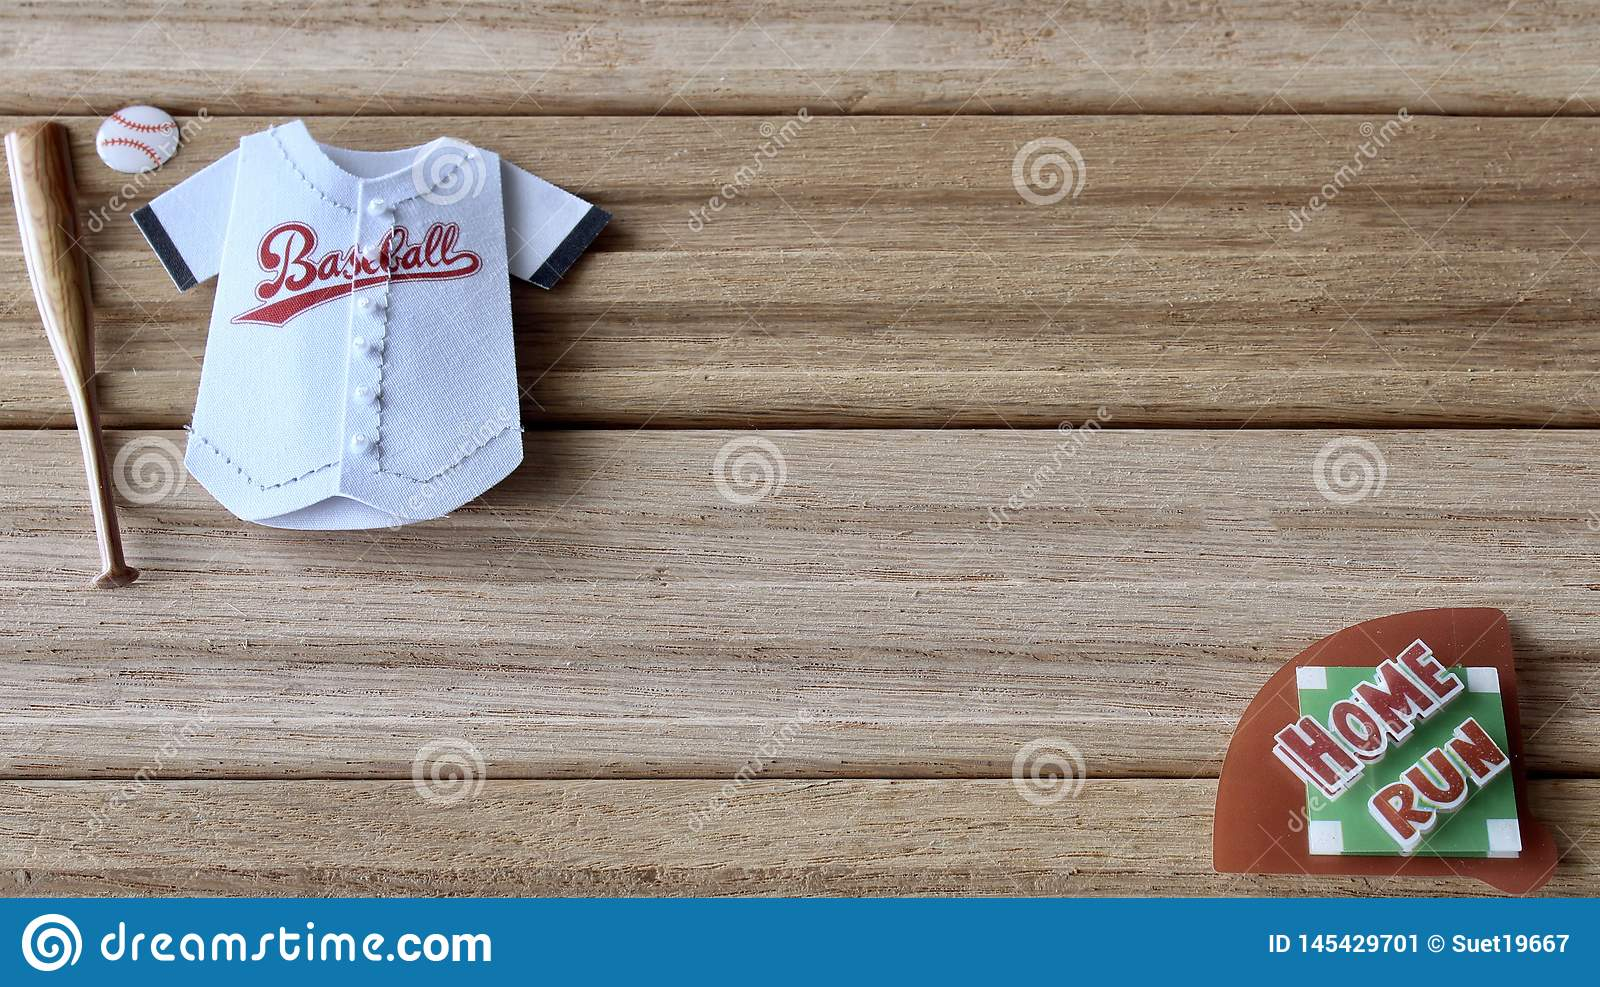 Baseball items on a wood background